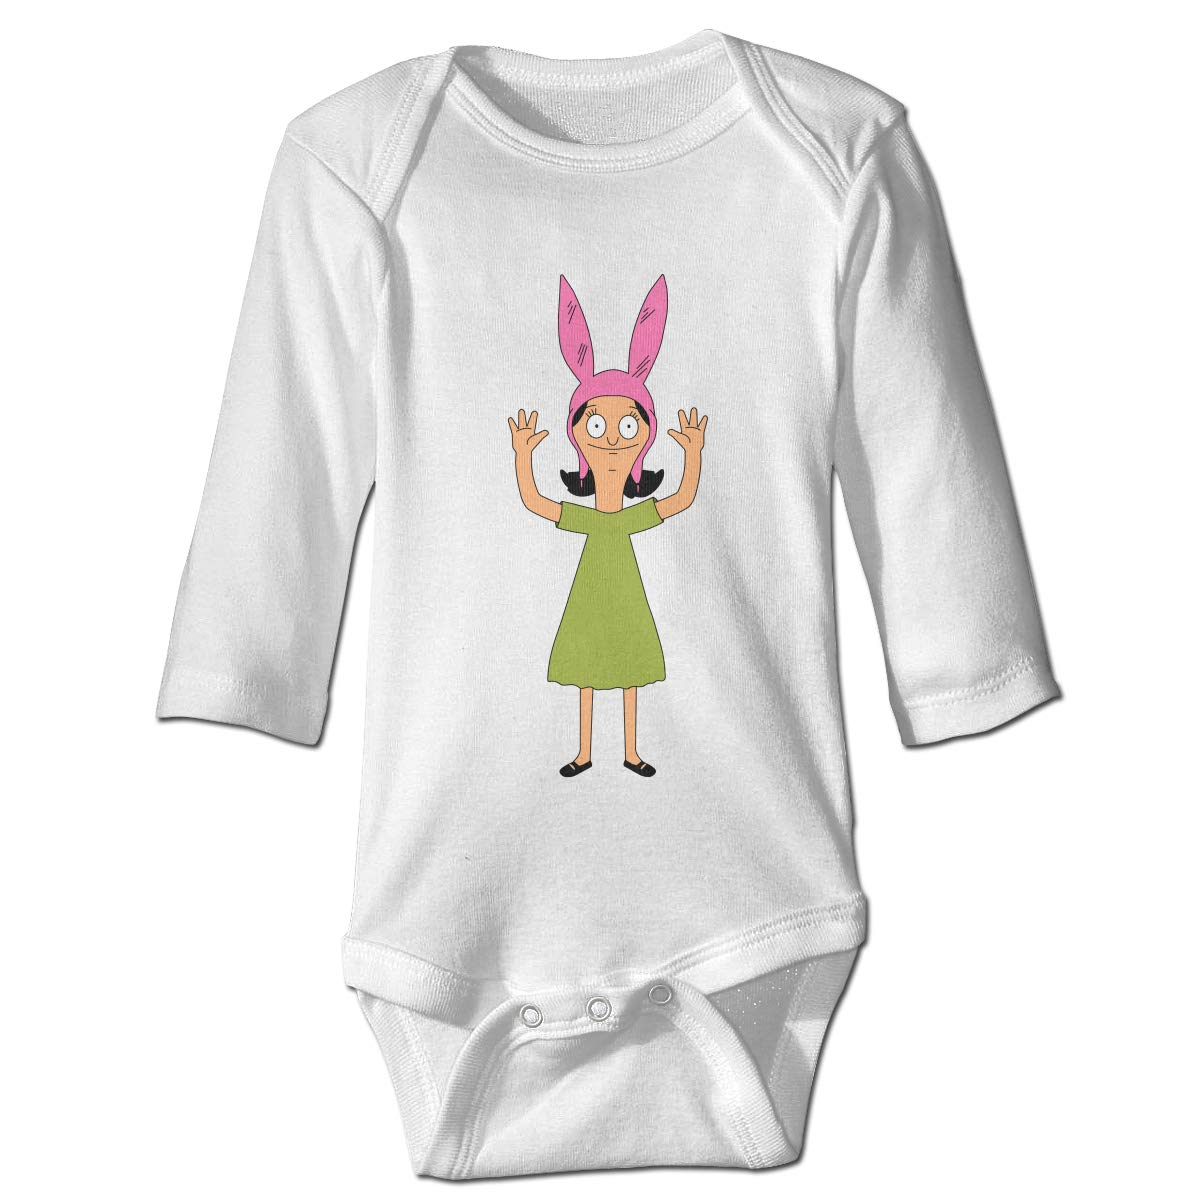 Bobs Burgers Unisex-Baby Cotton Long Sleeve Lap Neck Rompers Outfits One-Piece Bodysuits 6M